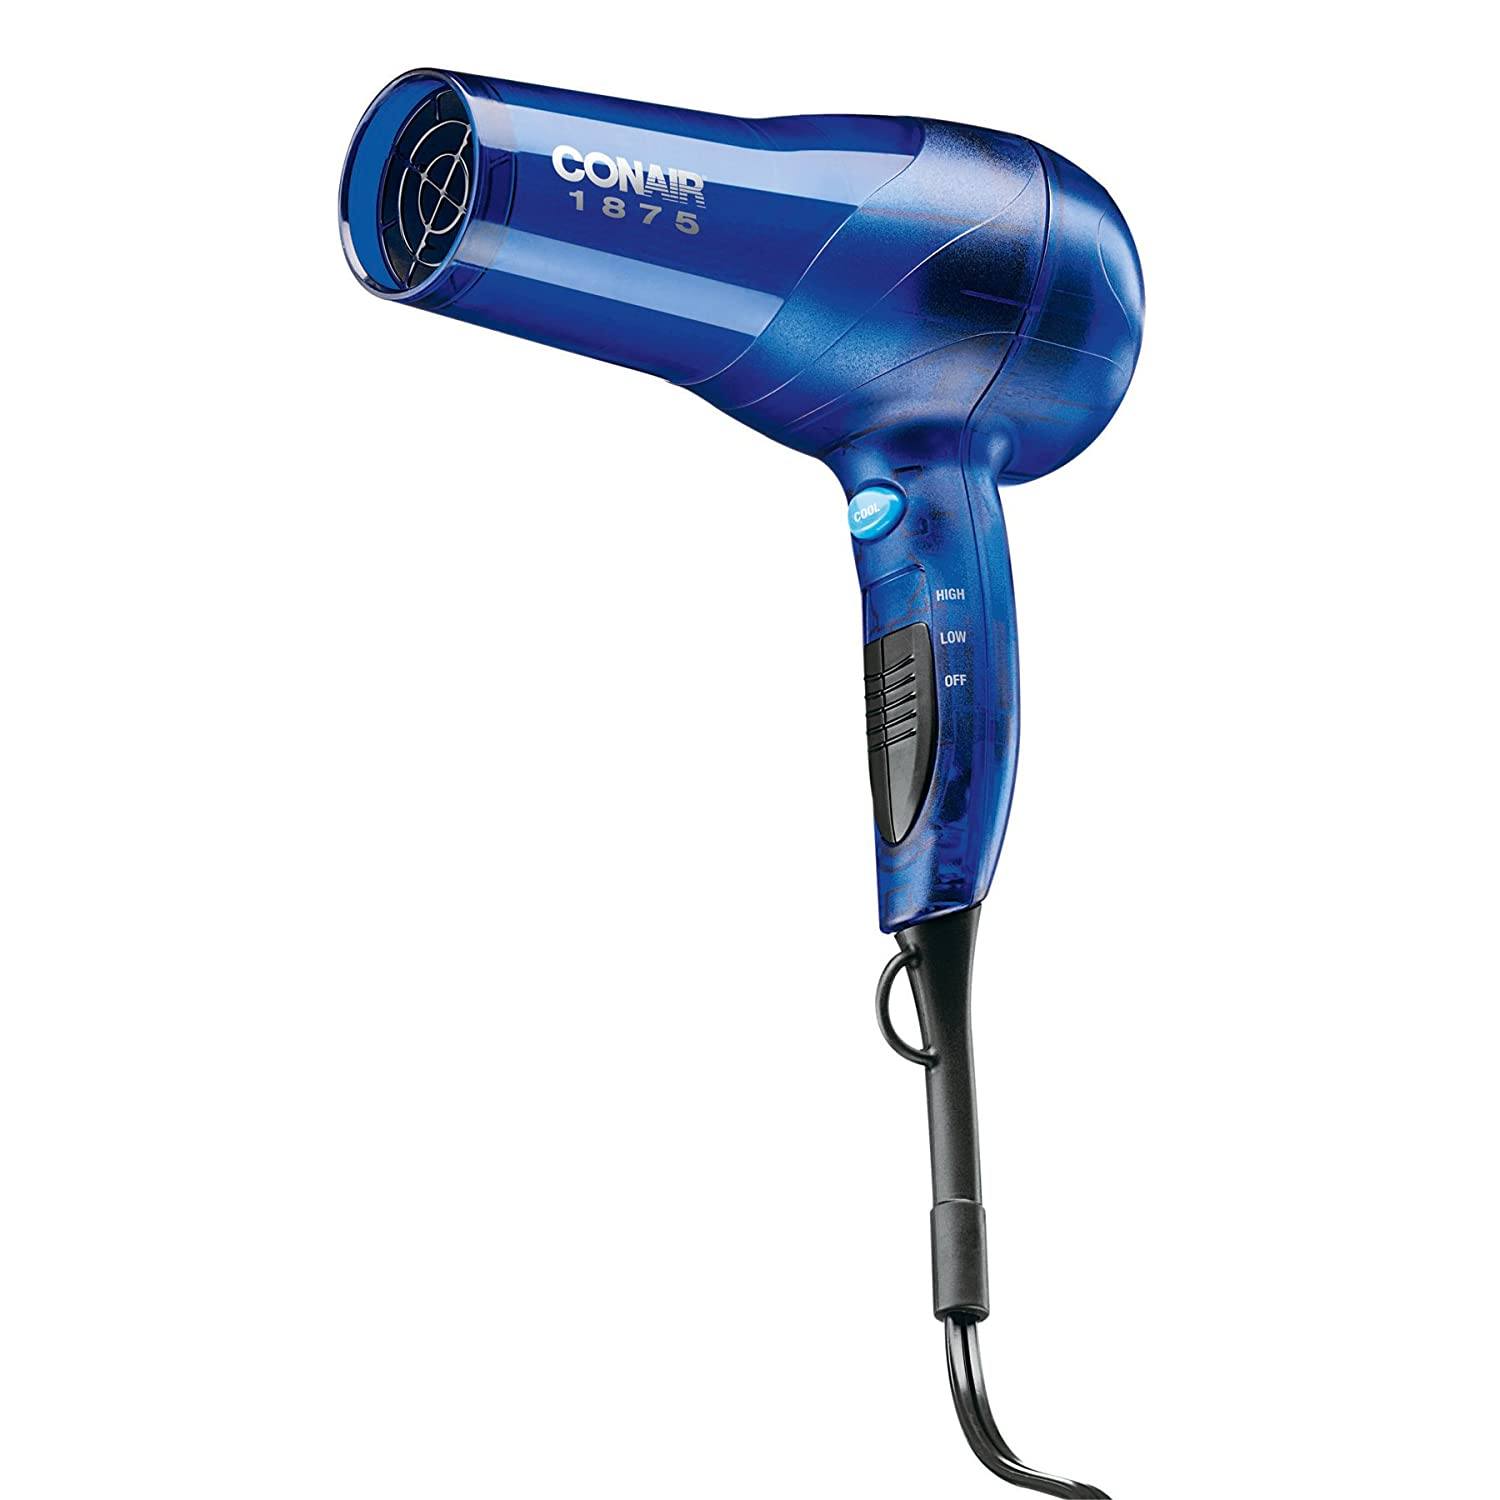 Conair 1875 Watt Turbo Hair Dryer and Styler, 30.4 Ounce